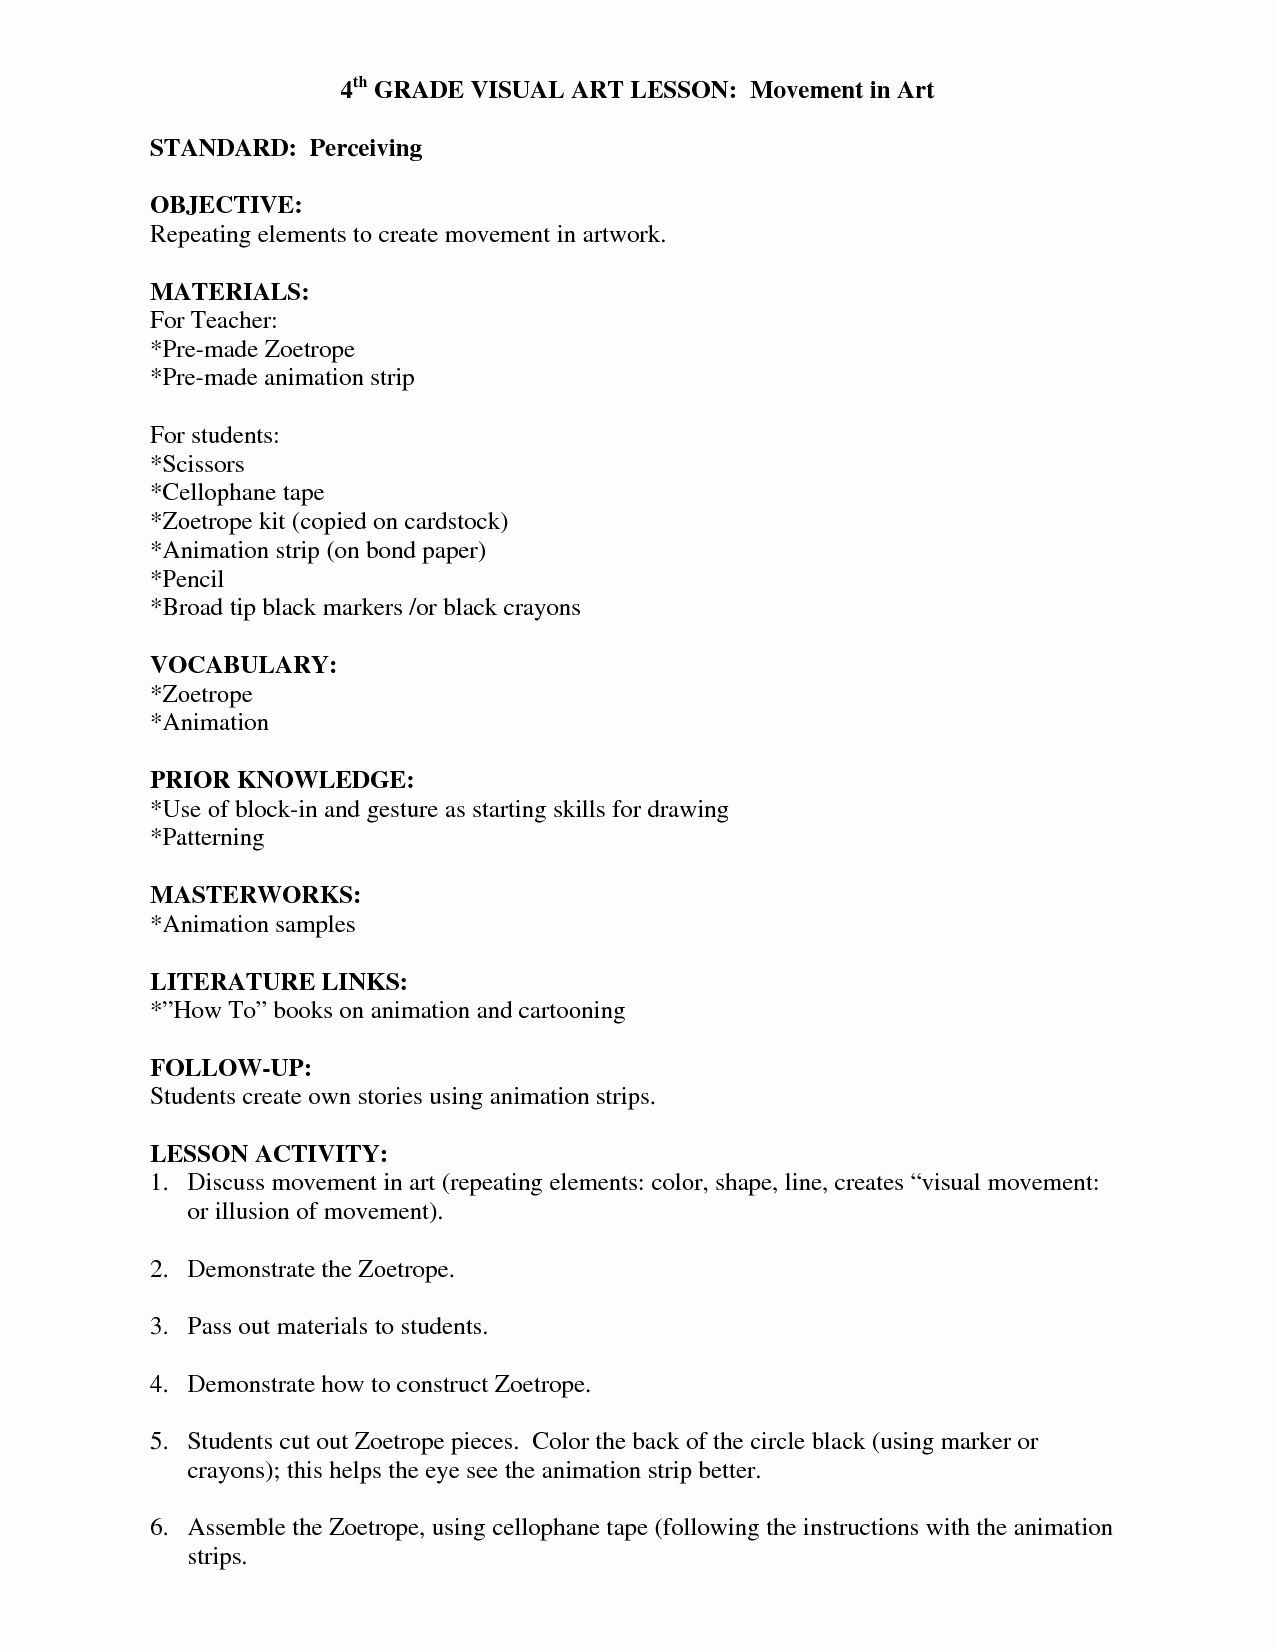 Art Lesson Plans Template Best Of Visual Arts Lesson Plan Template Visual Arts Lesson Plan Template Art Tips